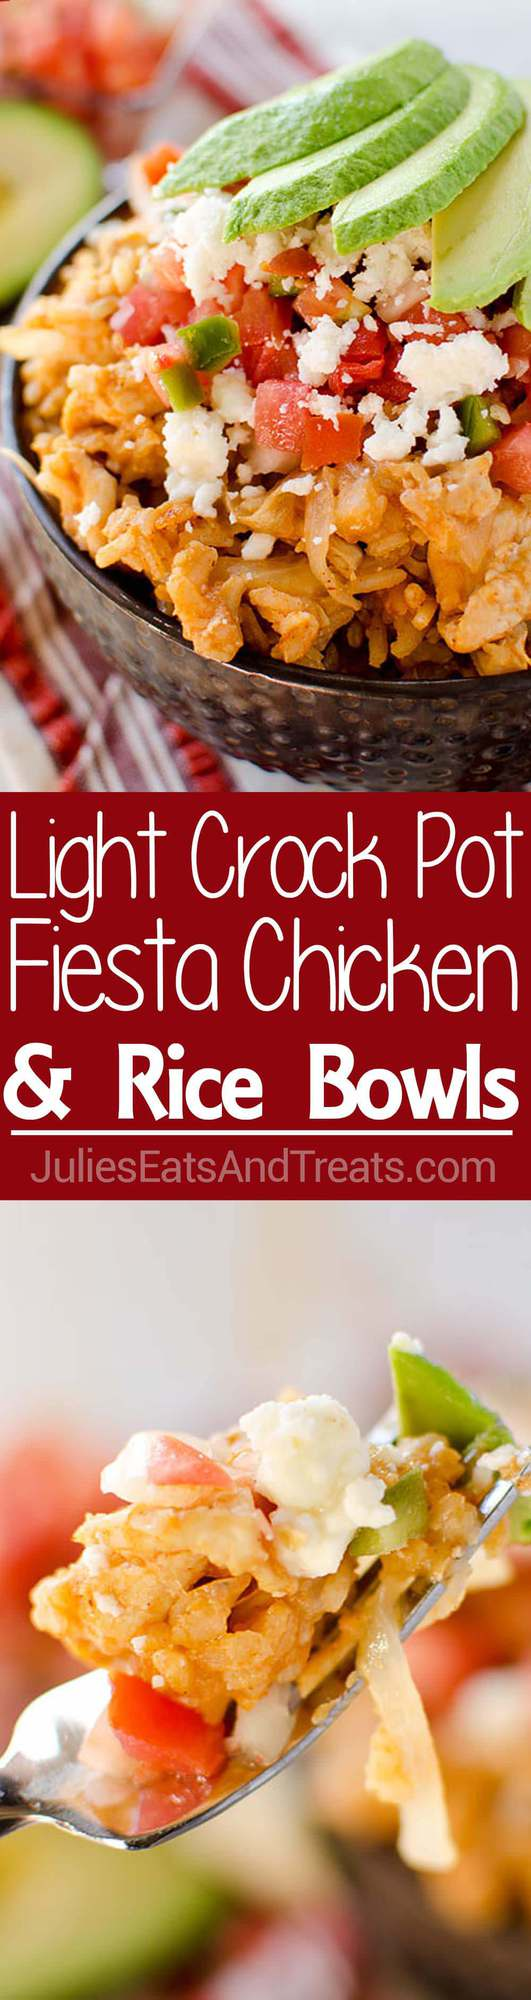 Light Crock Pot Fiesta Chicken & Rice Bowls loaded with chicken, brown rice and pico de gallo for a healthy dish you can throw in your slow cooker for an easy and delicious meal!